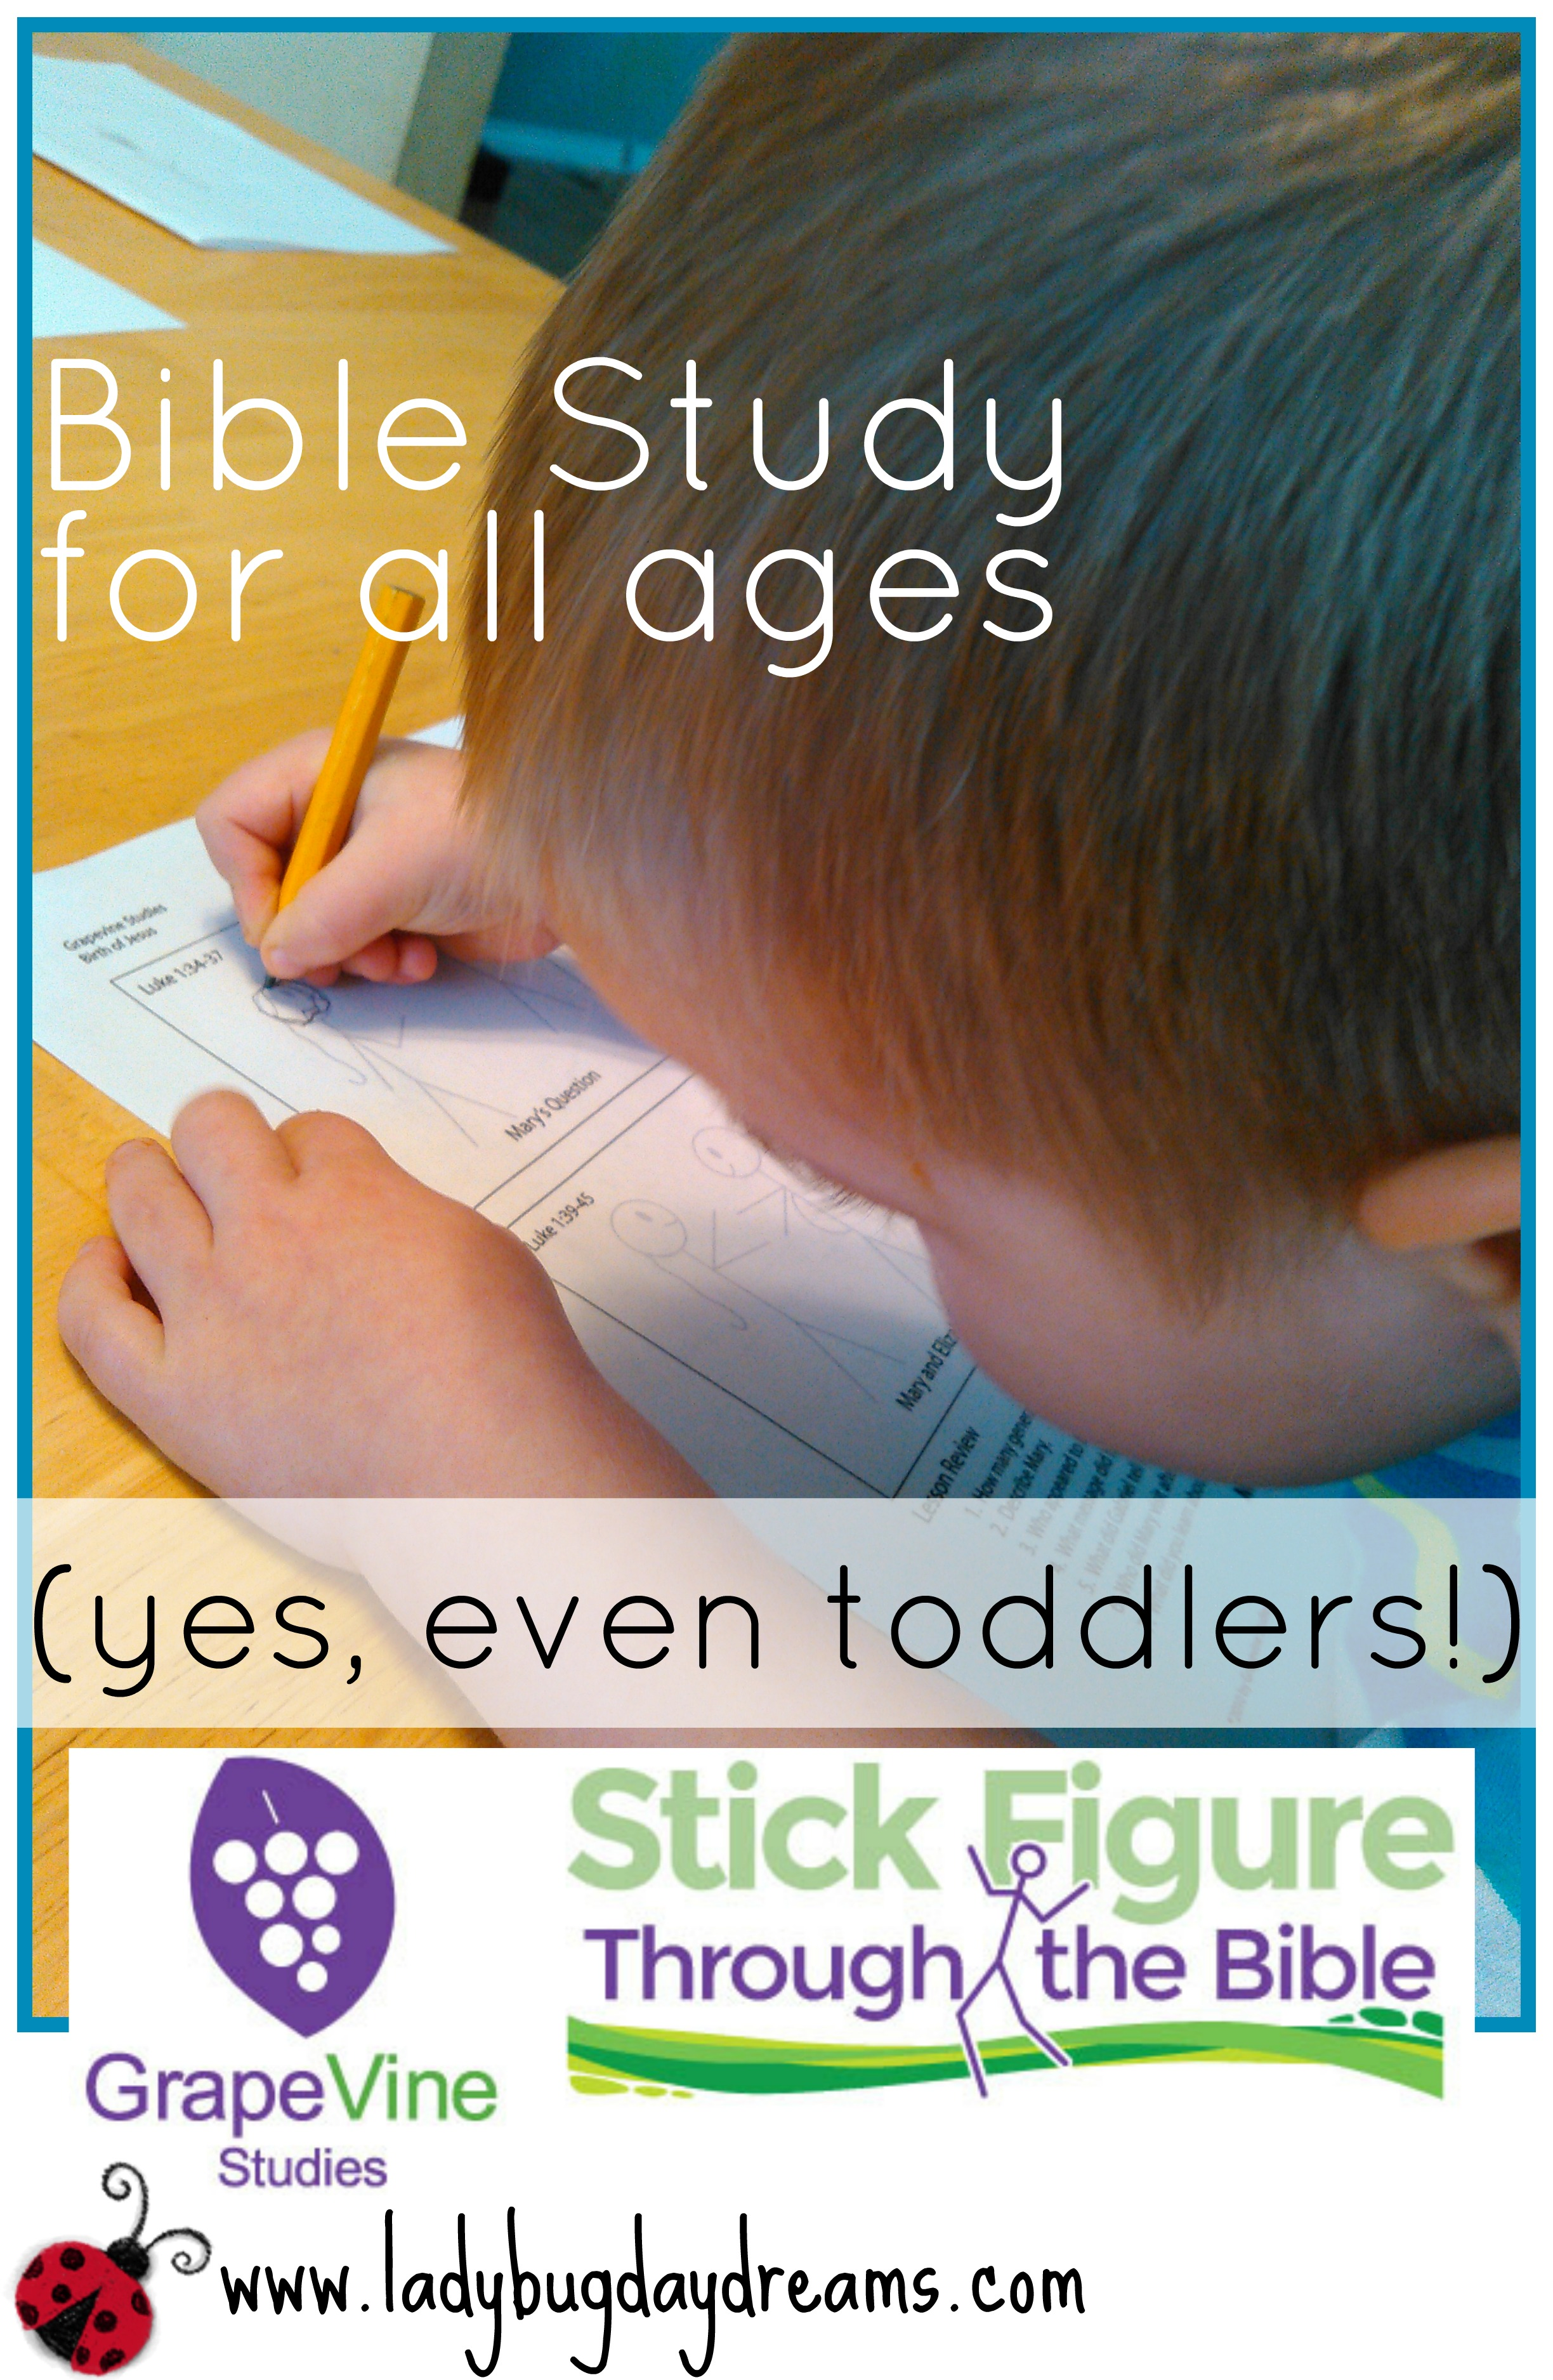 GrapeVine Bible Study for all ages